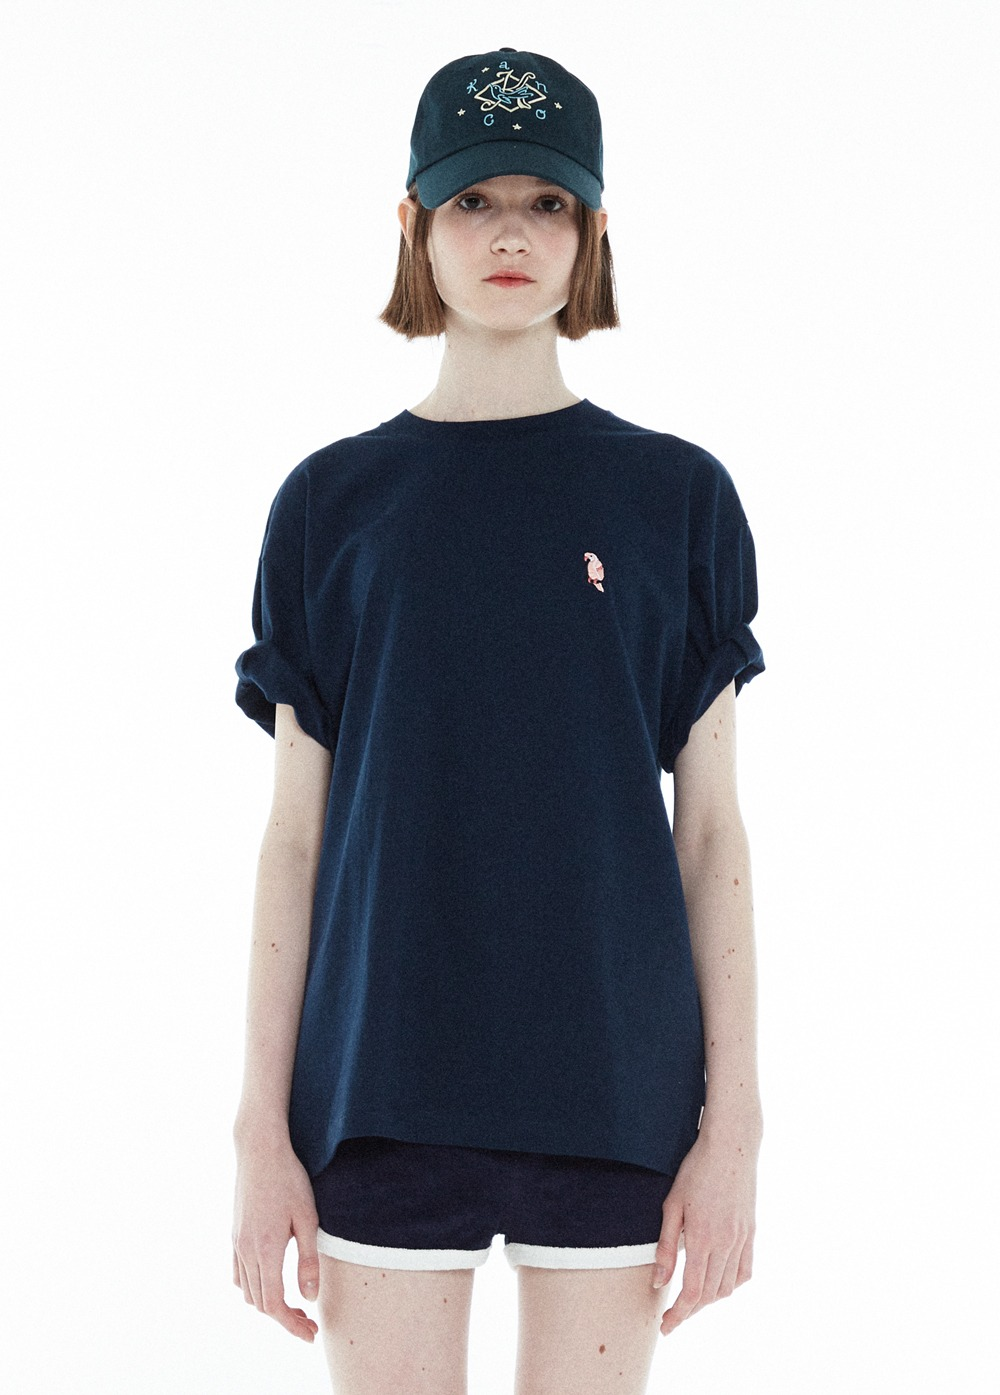 KANCO FULL LOGO TEE navy